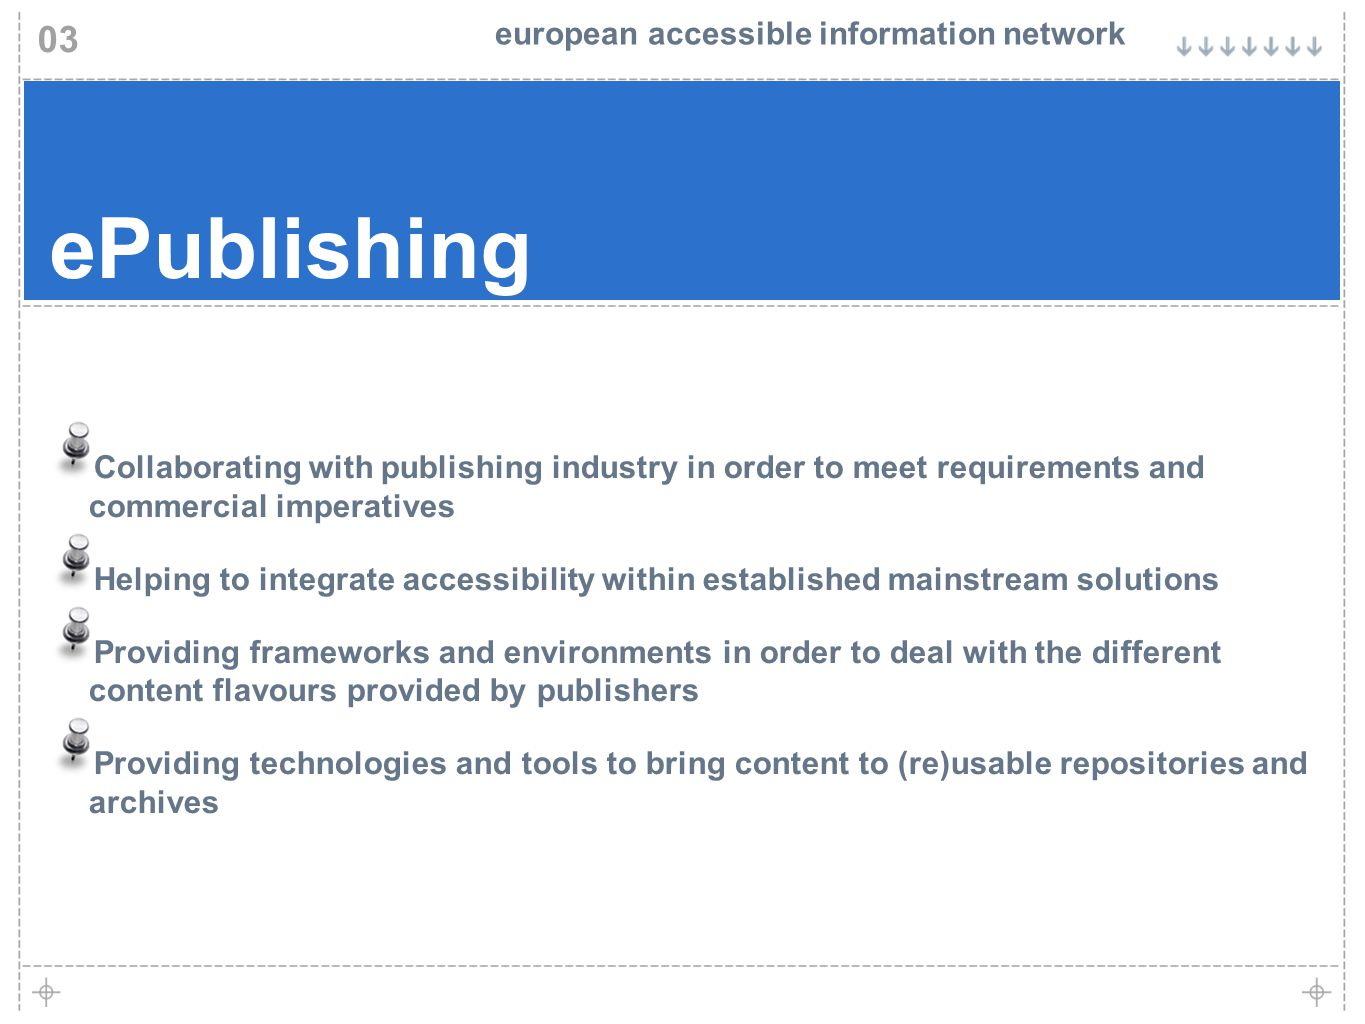 european accessible information network ePublishing Collaborating with publishing industry in order to meet requirements and commercial imperatives Helping to integrate accessibility within established mainstream solutions Providing frameworks and environments in order to deal with the different content flavours provided by publishers Providing technologies and tools to bring content to (re)usable repositories and archives 03